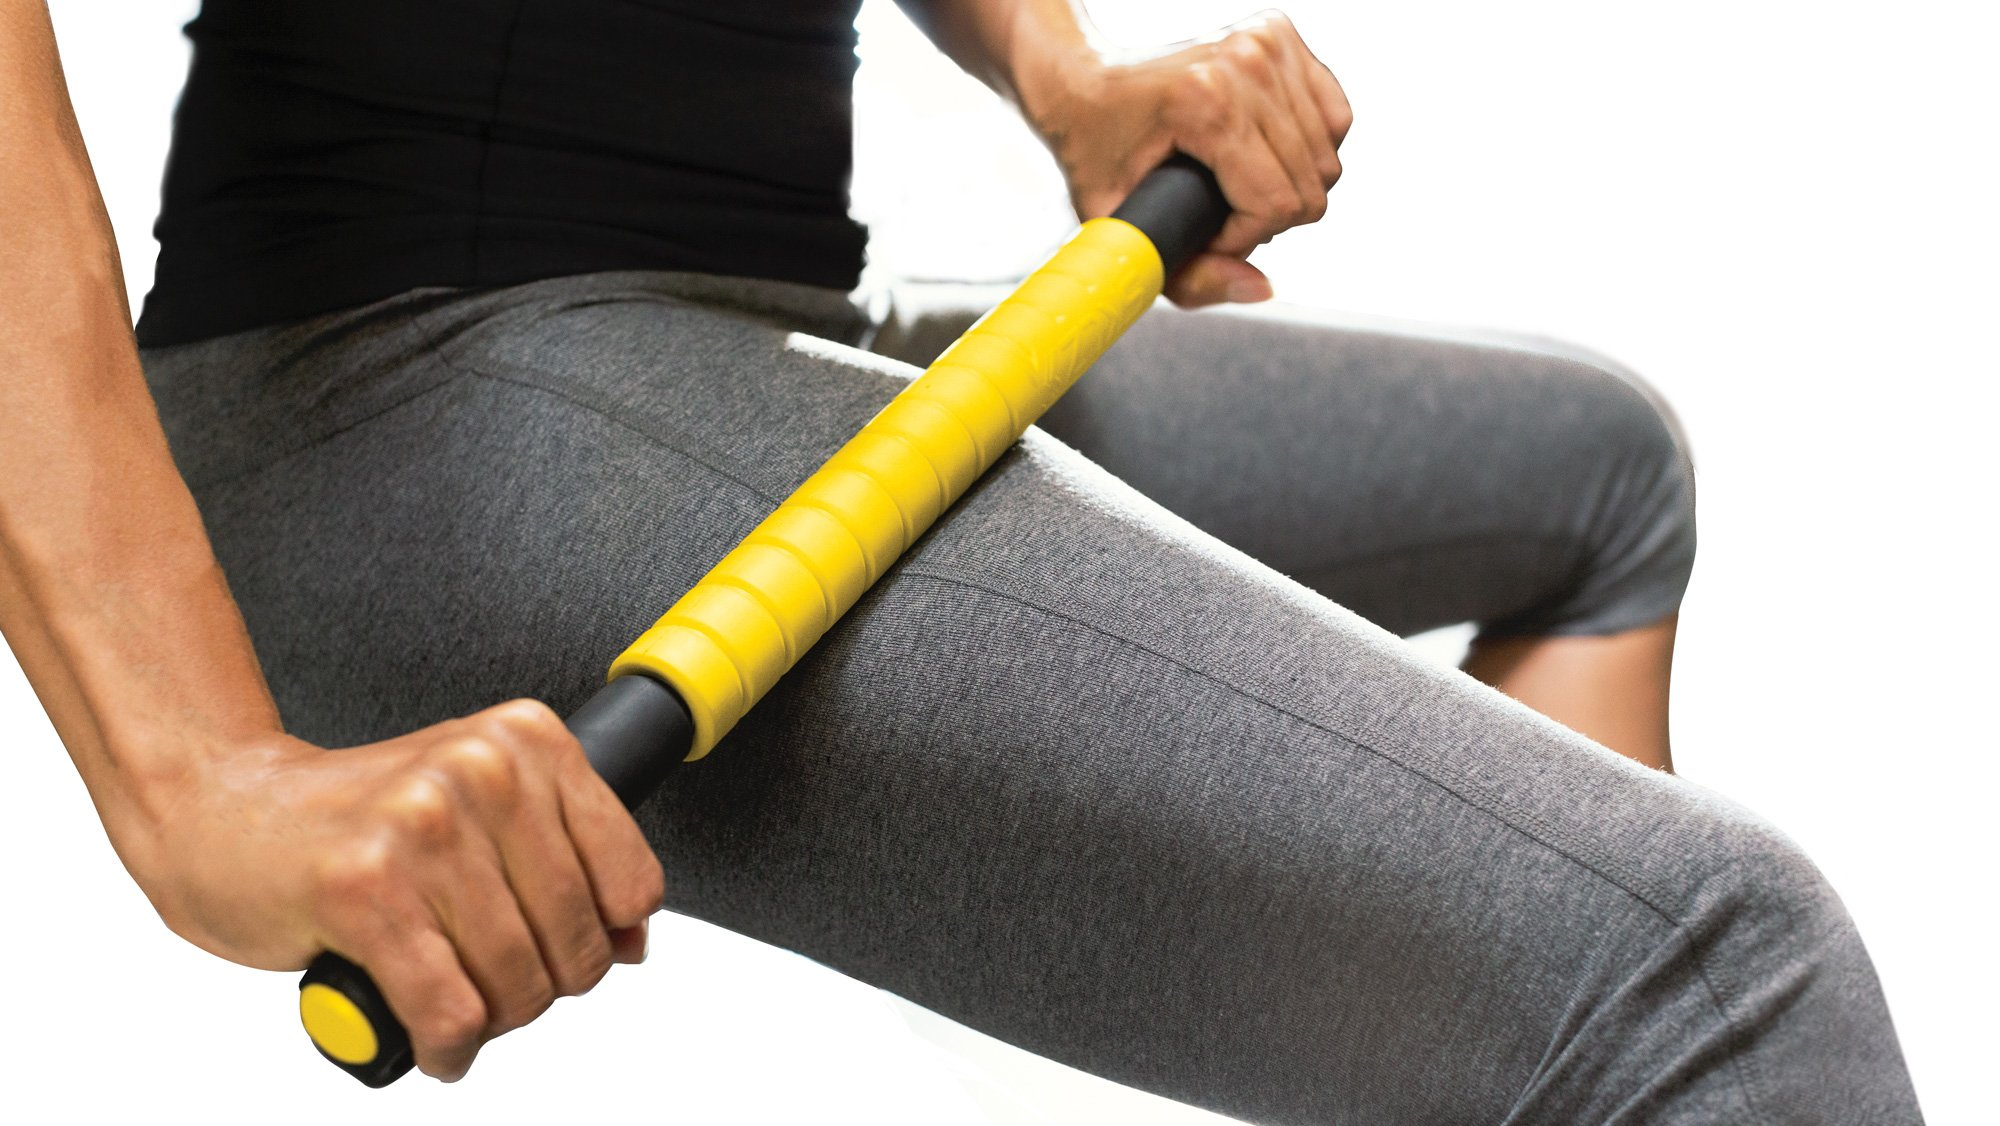 SKLZ Massage Bar - Muscle Roller Massage Stick for Physical Therapy, Trigger Points and Myofascial Release, Pain Relief, Sore Muscles and Faster Recovery